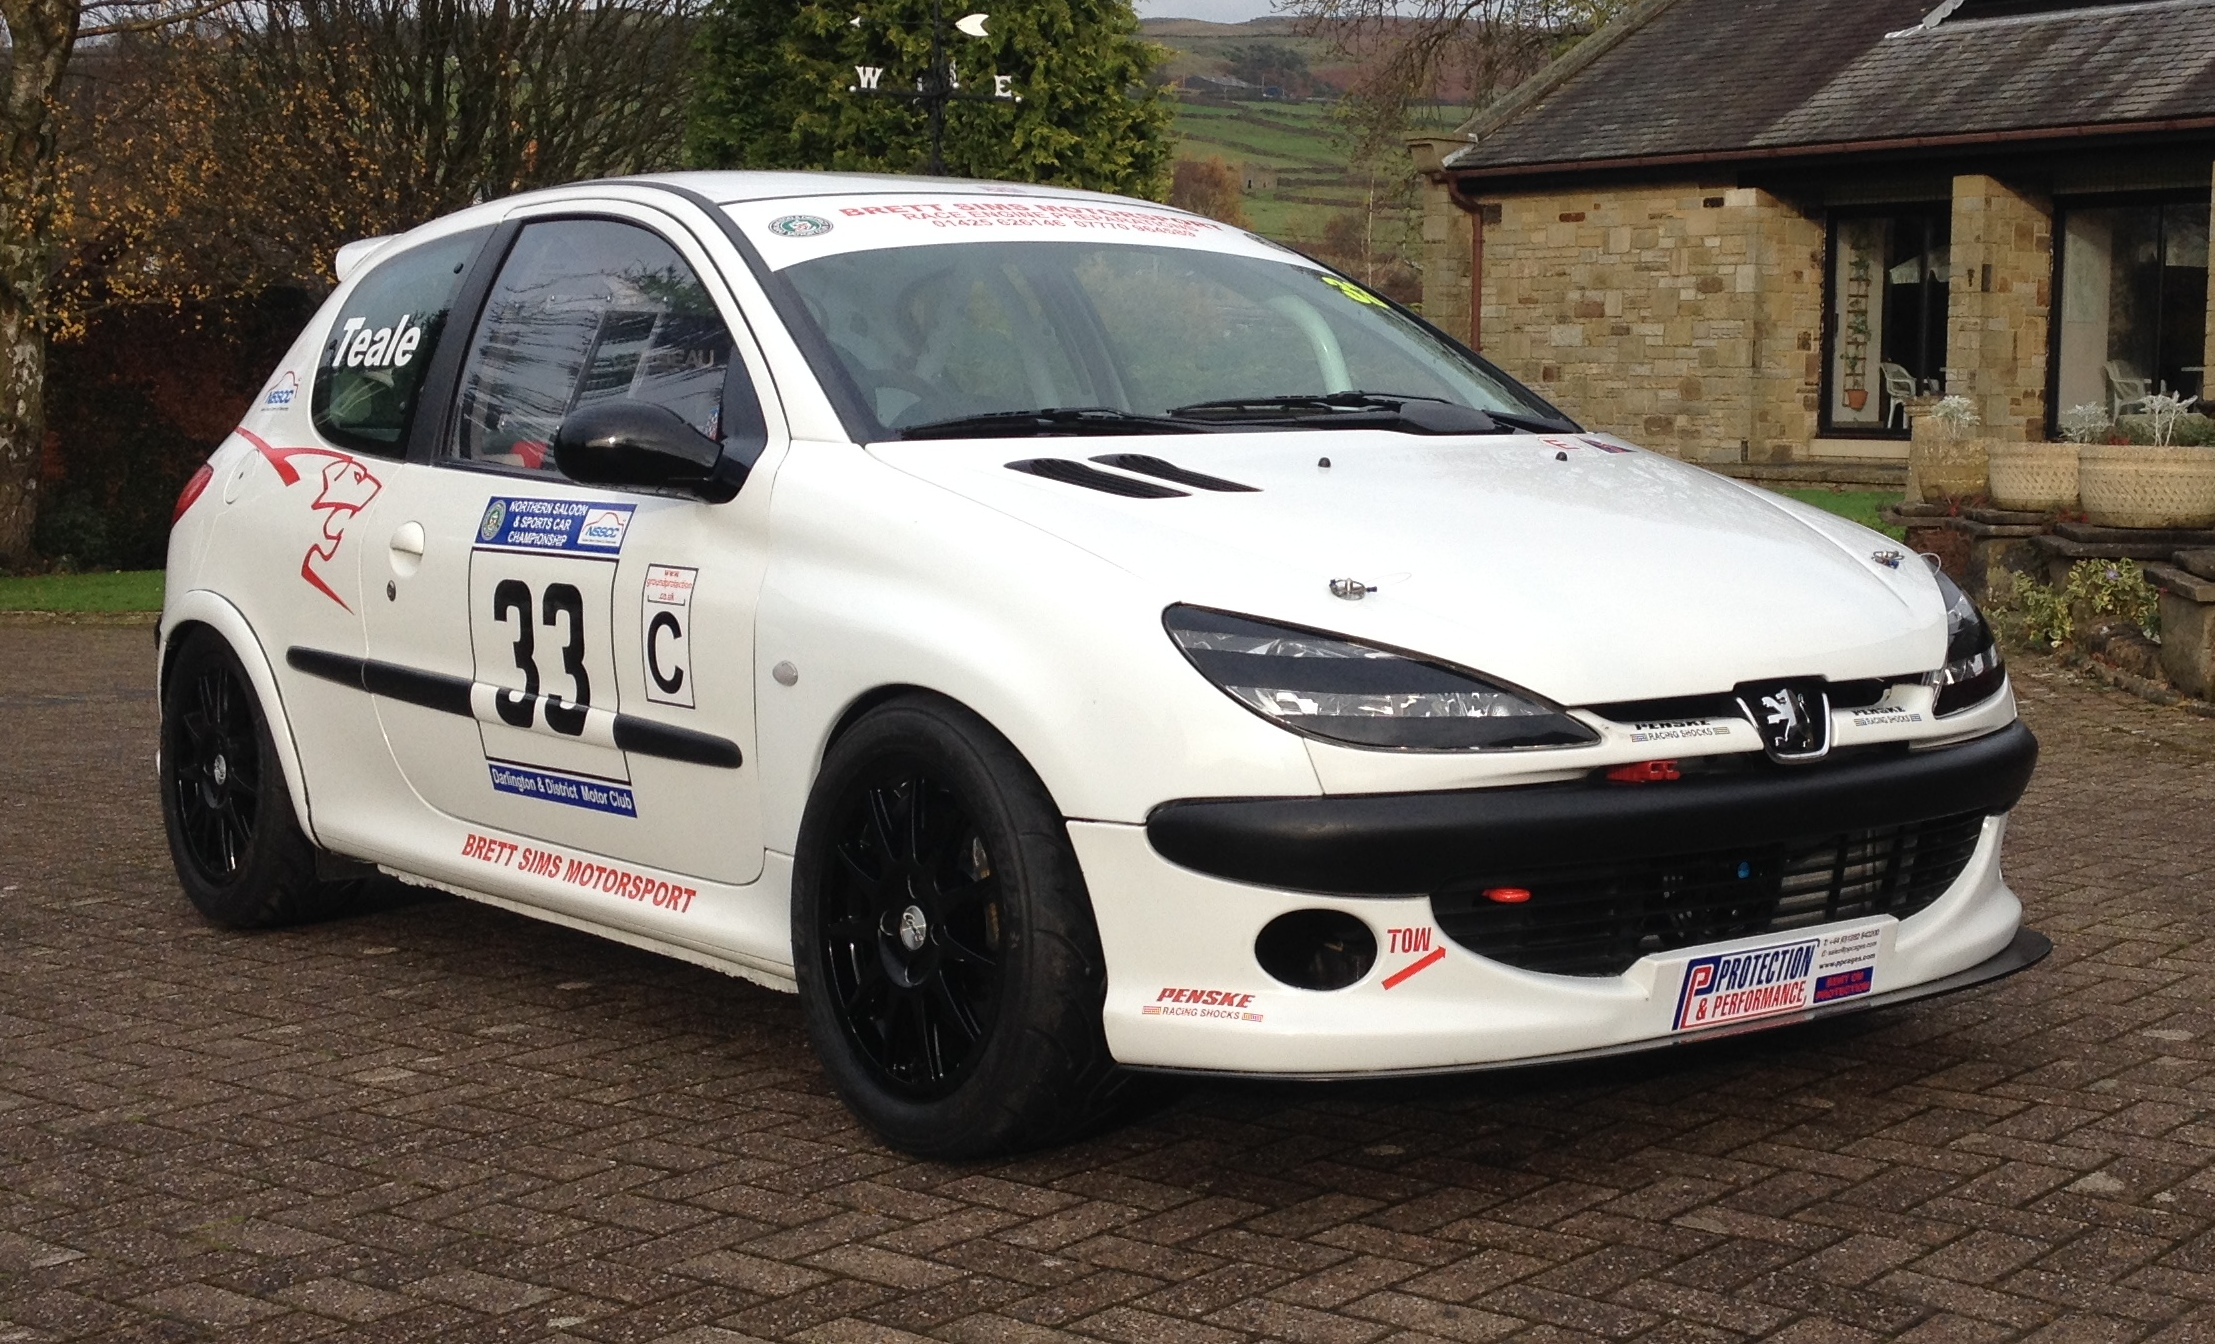 Race Cars For Sale At Raced Rallied: Peugeot 206 Race Car,Rally,Sprint/hillclimb, Track 274 BHP